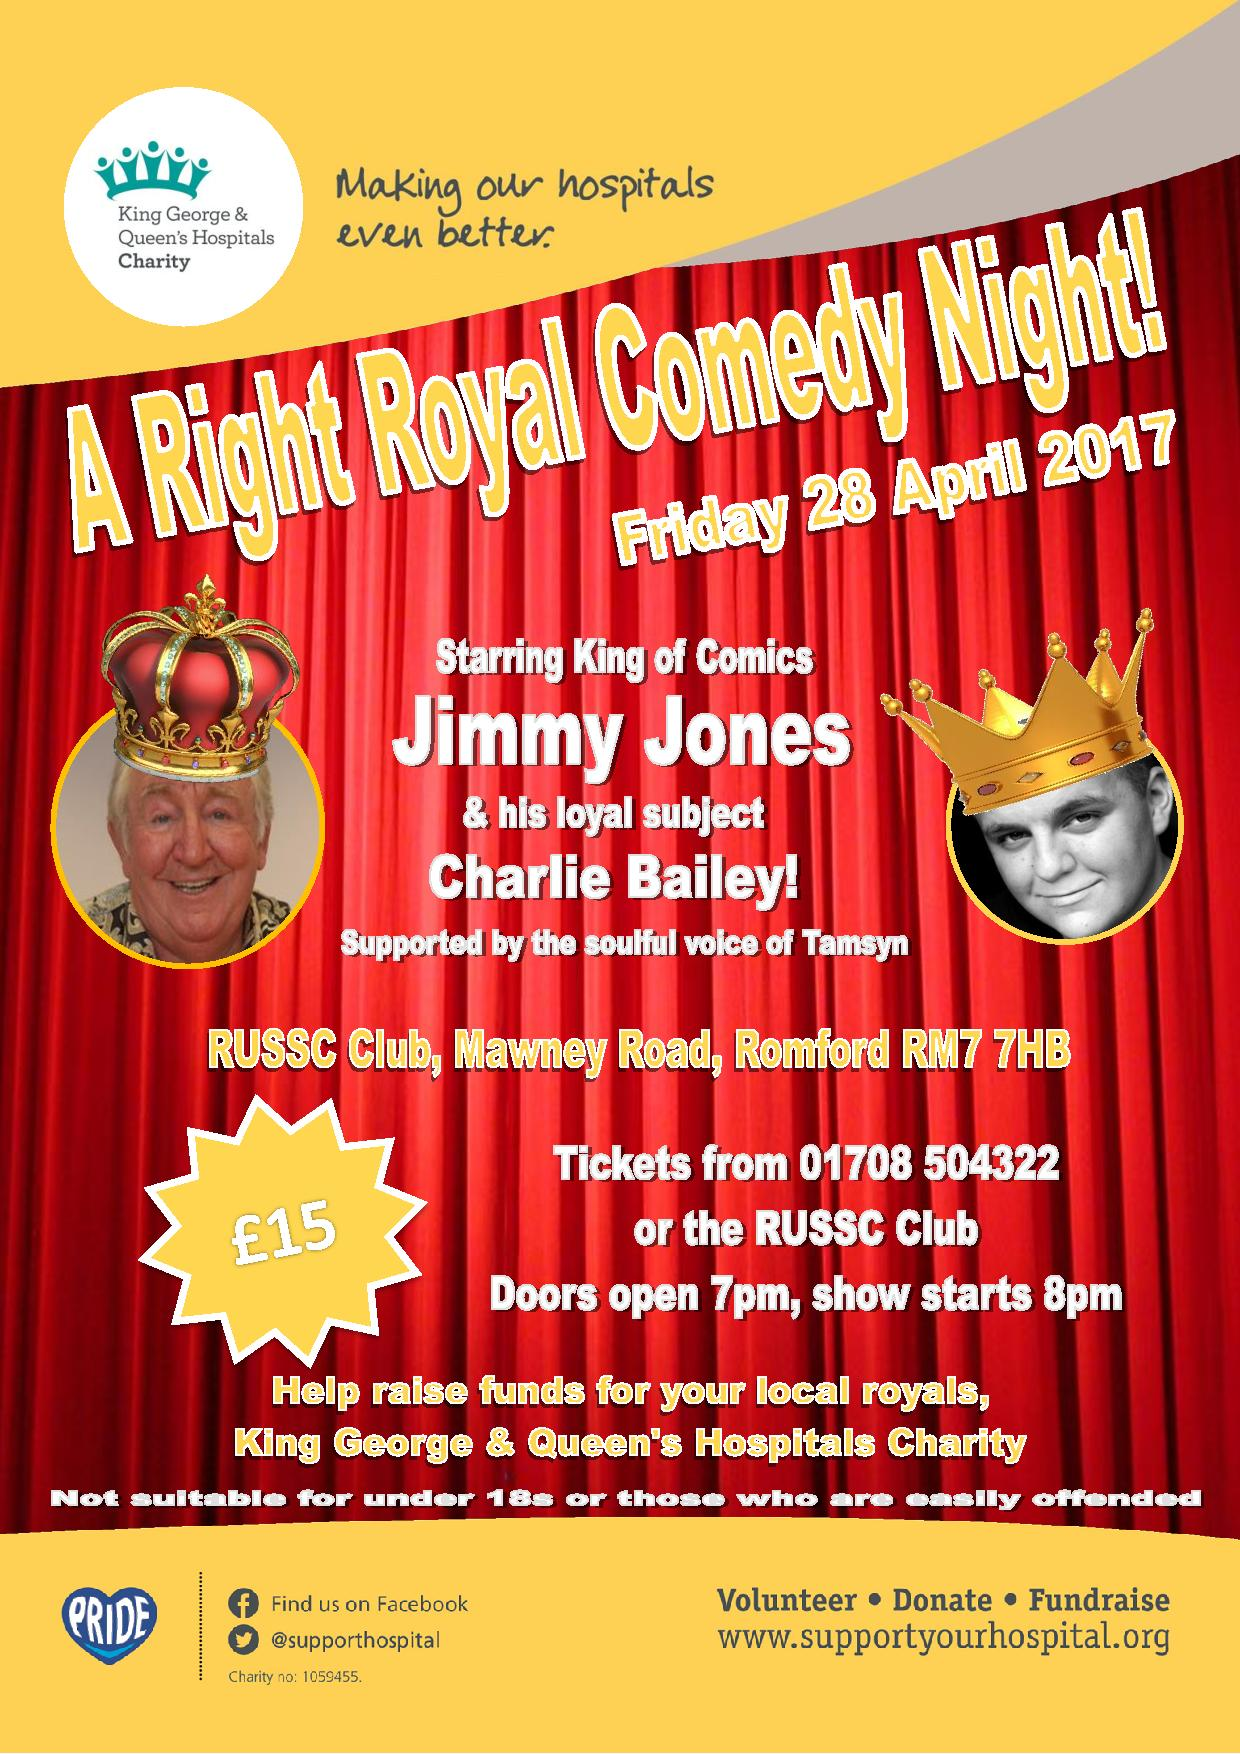 A Right Royal Comedy Night